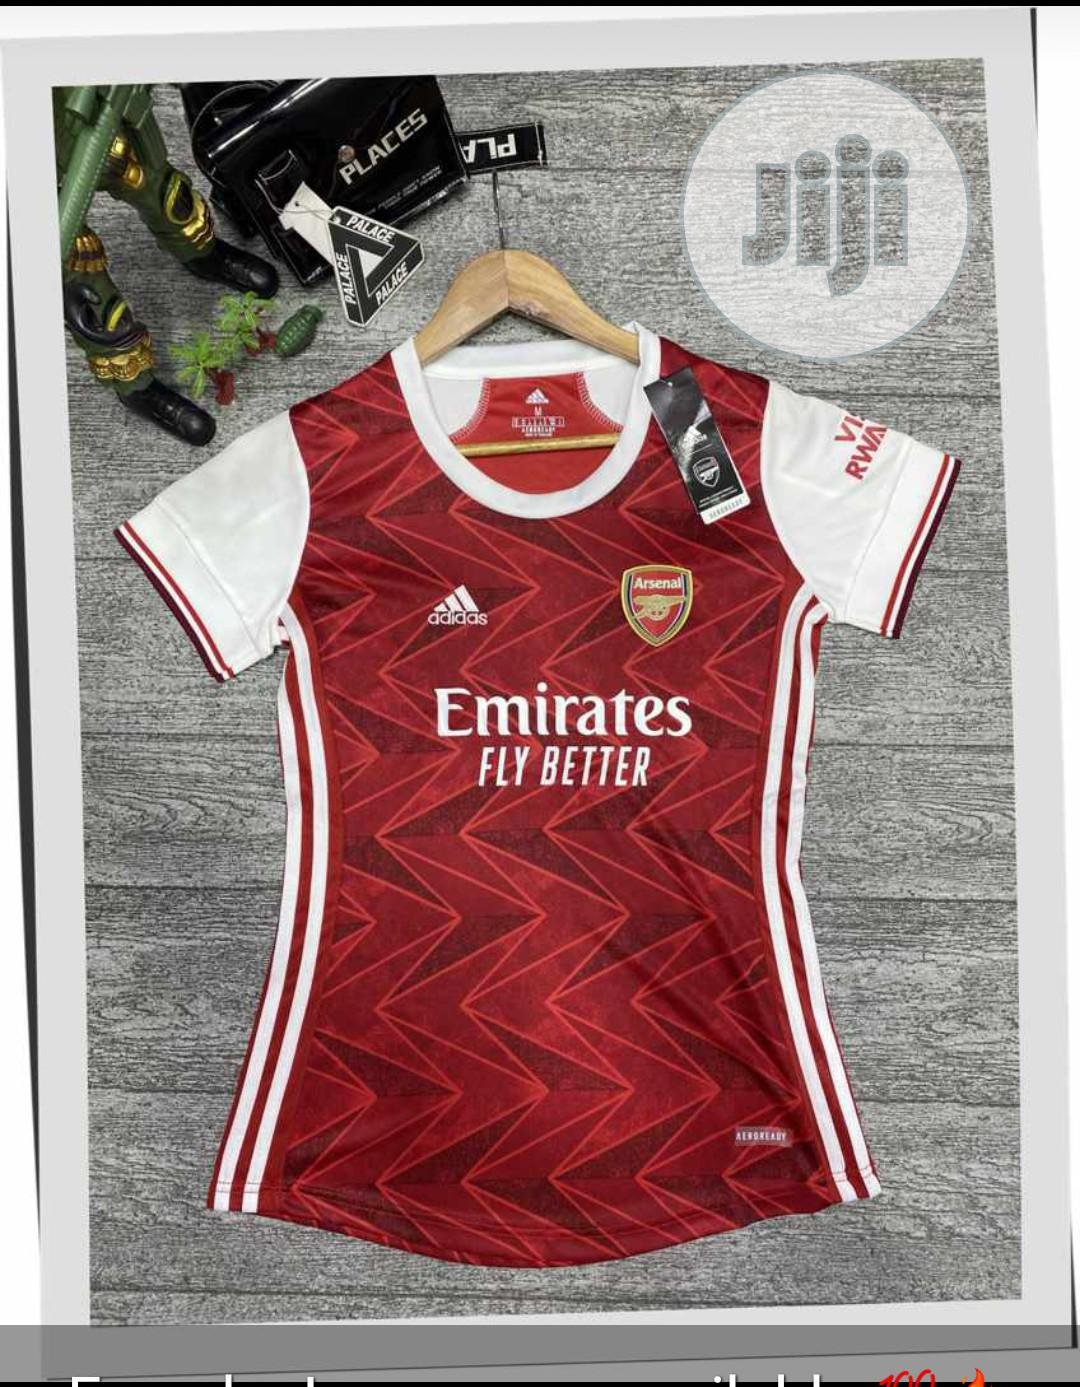 Arsenal Official 20/21 Female Home Jersey | Clothing for sale in Surulere, Lagos State, Nigeria